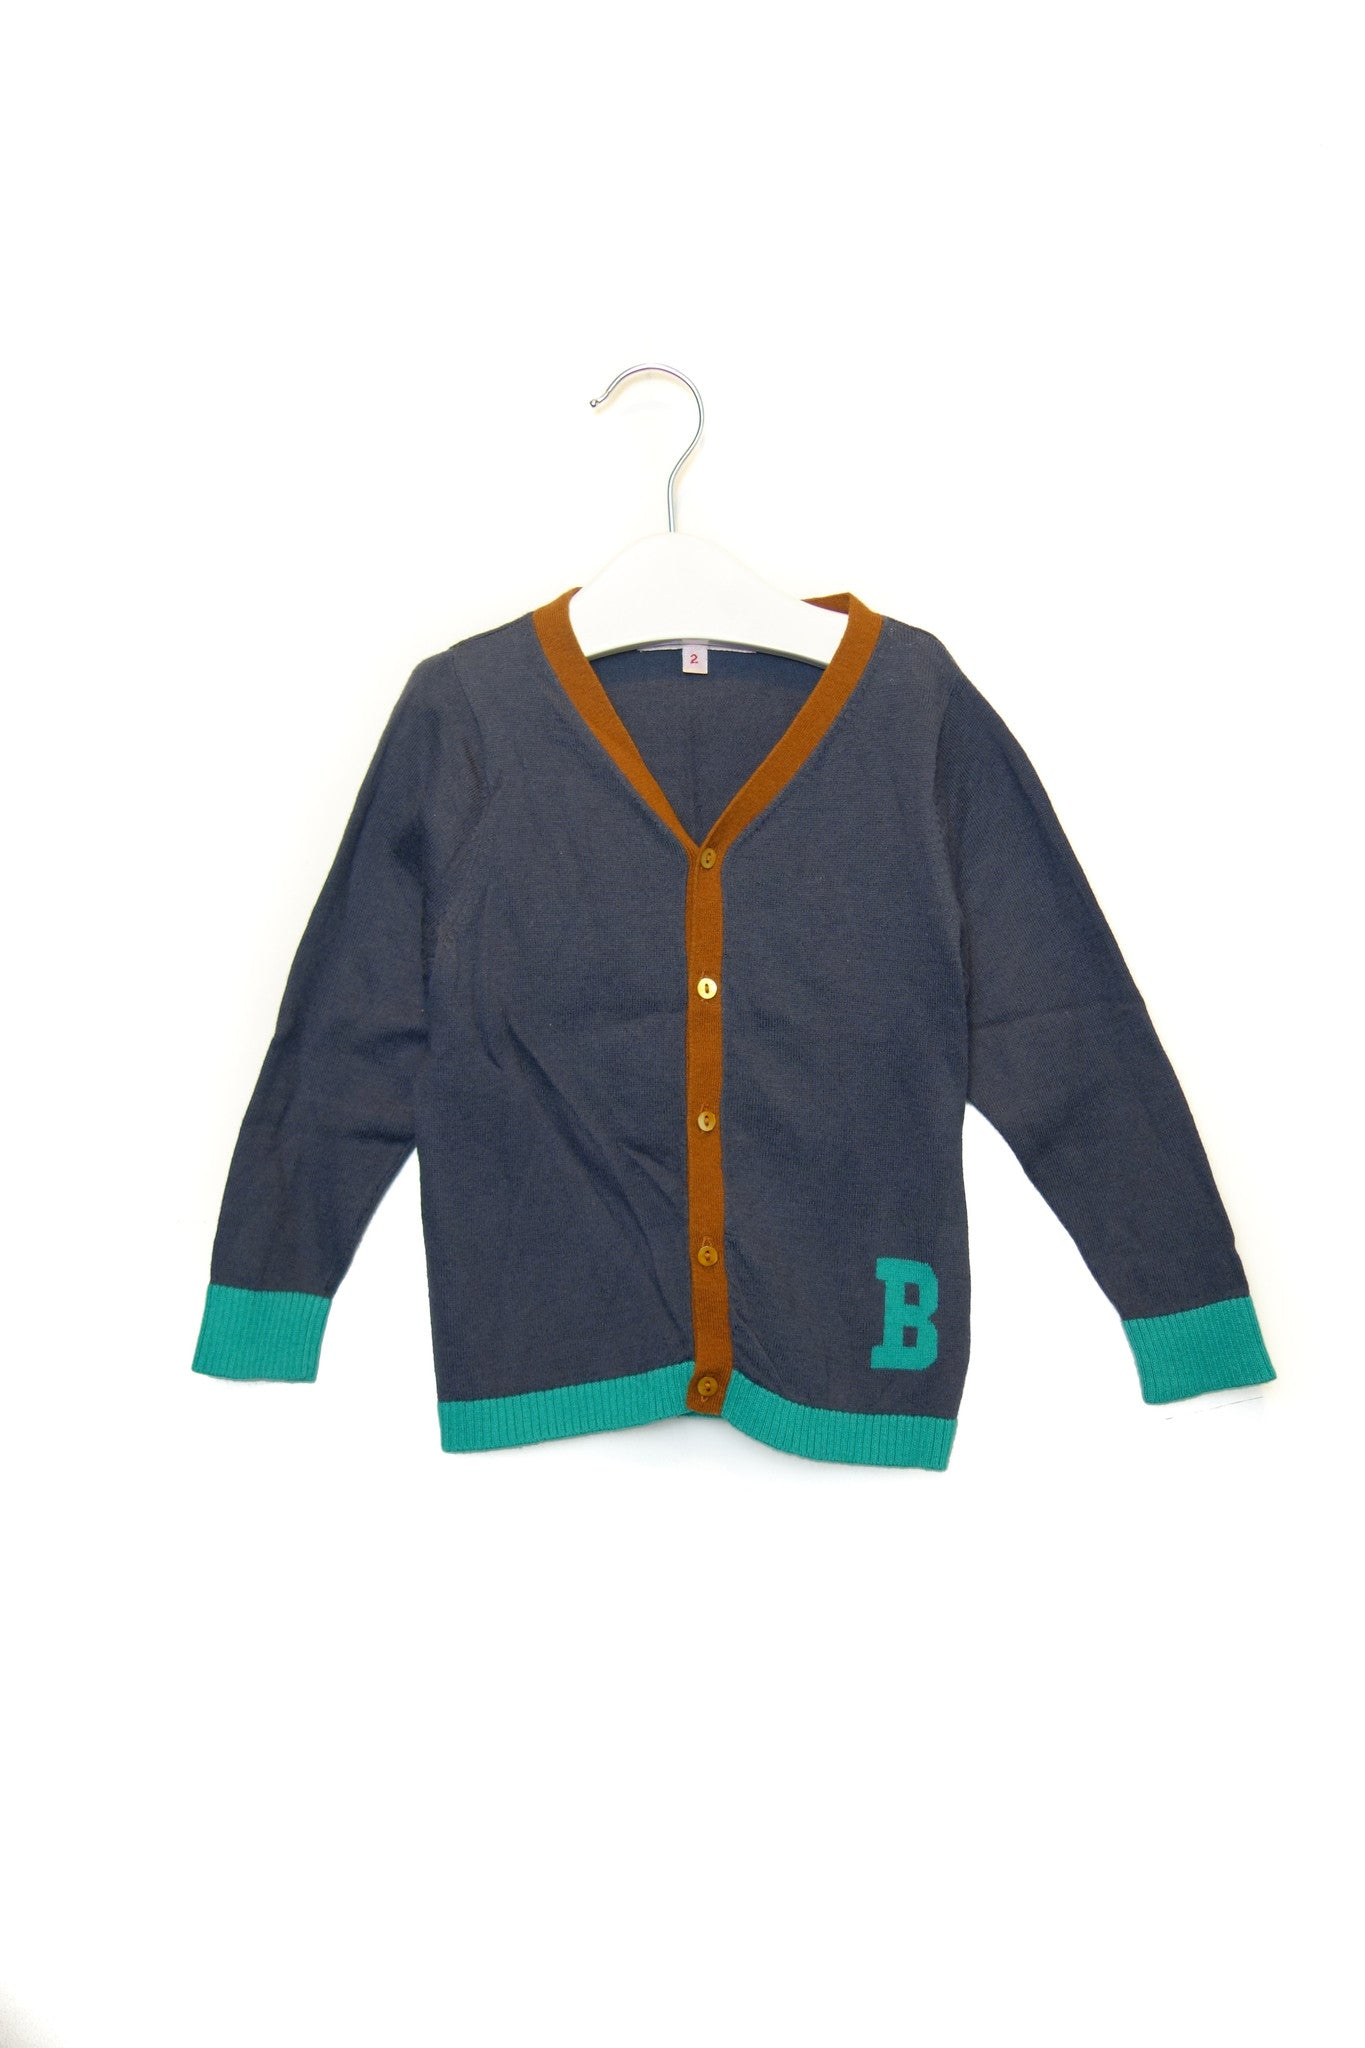 10001756 Bonpoint Kids~Cardigan 2T at Retykle